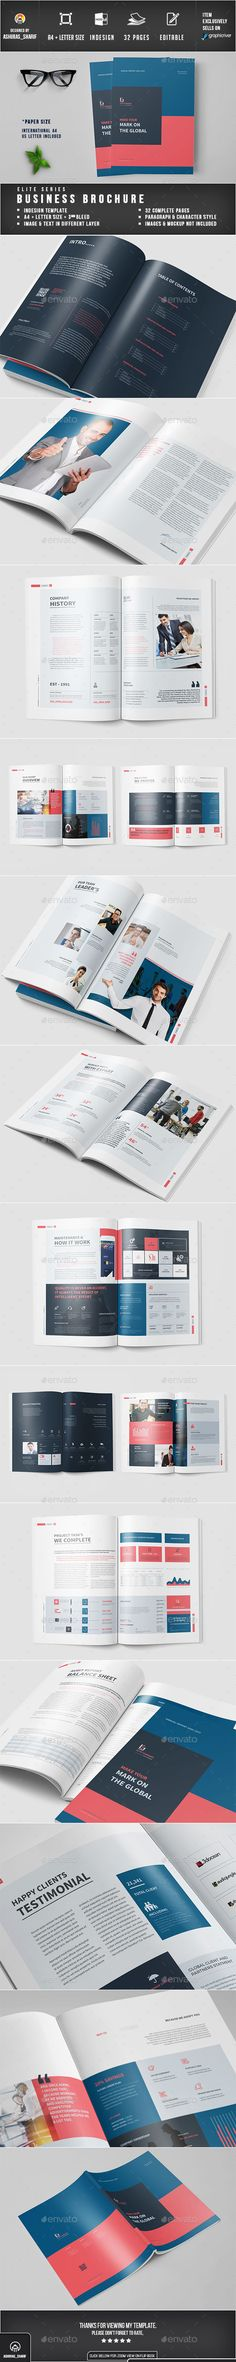 Susan Michie school Pinterest People, Psychology and Health - self review template